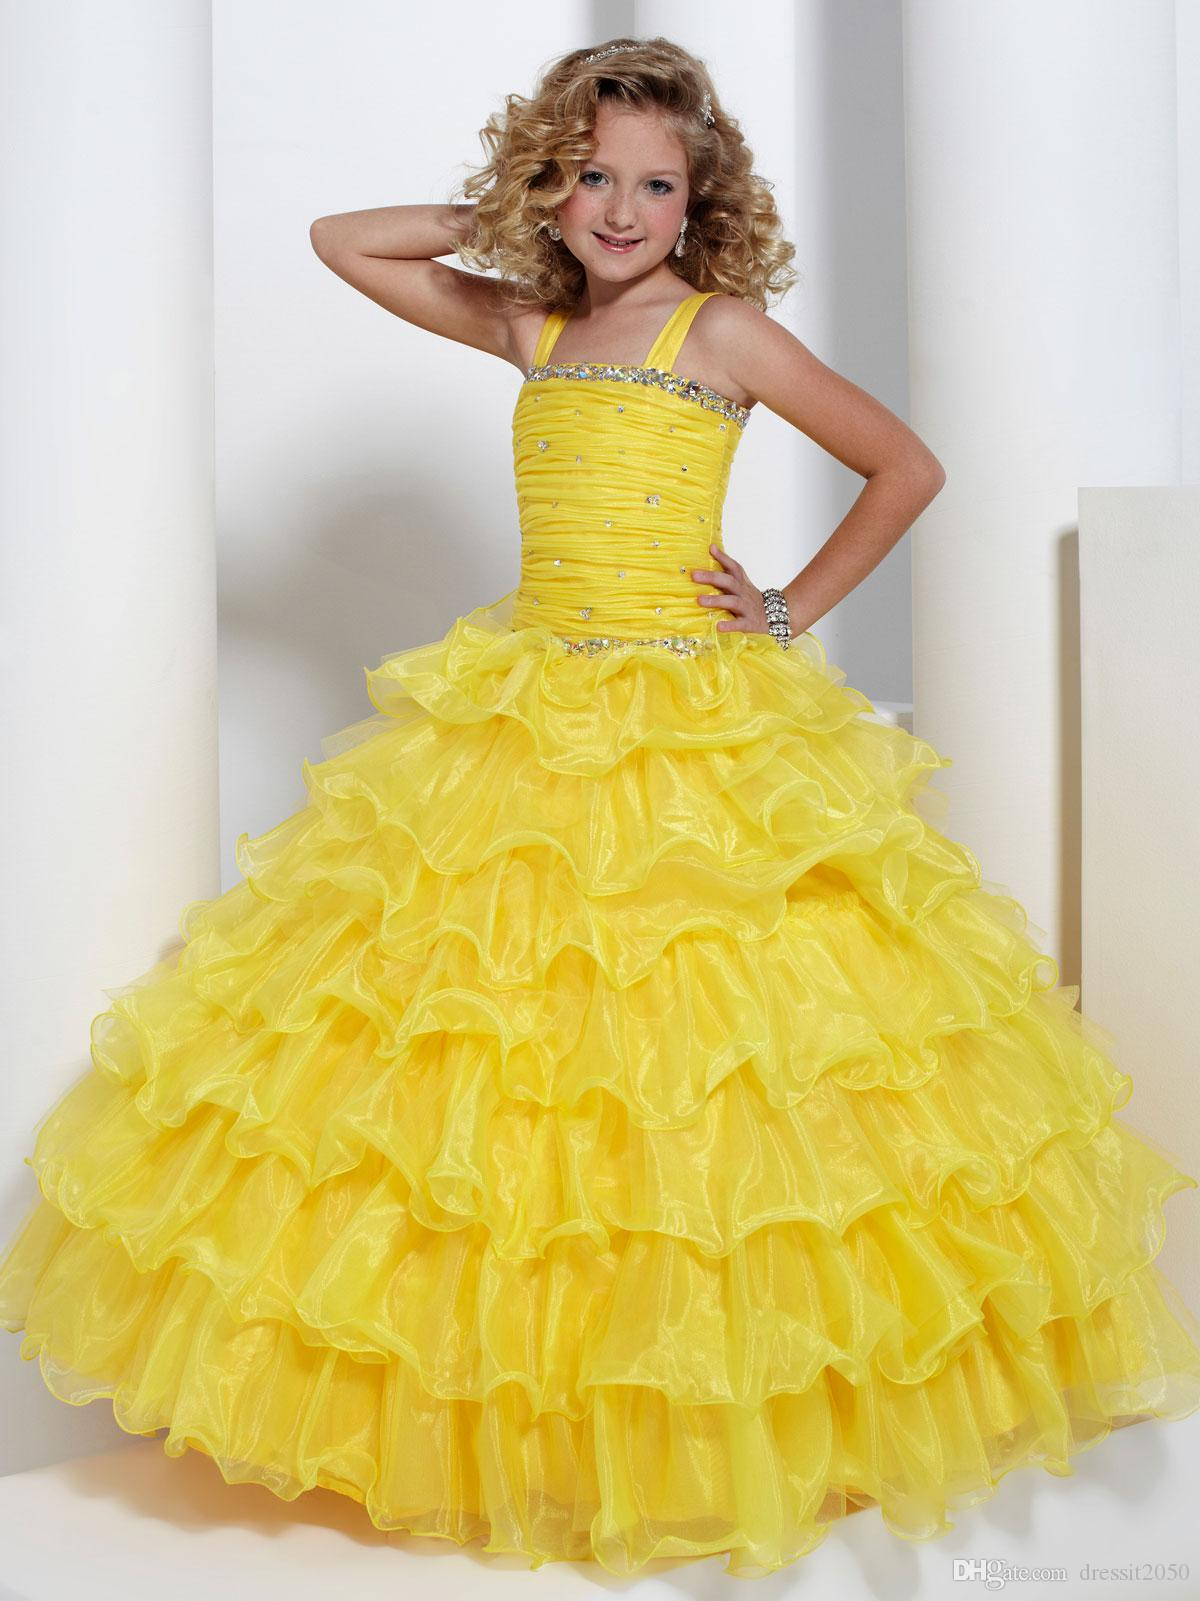 Bright Yellow Ice Tulle Layers Beads Flower Girl Dresses Girls